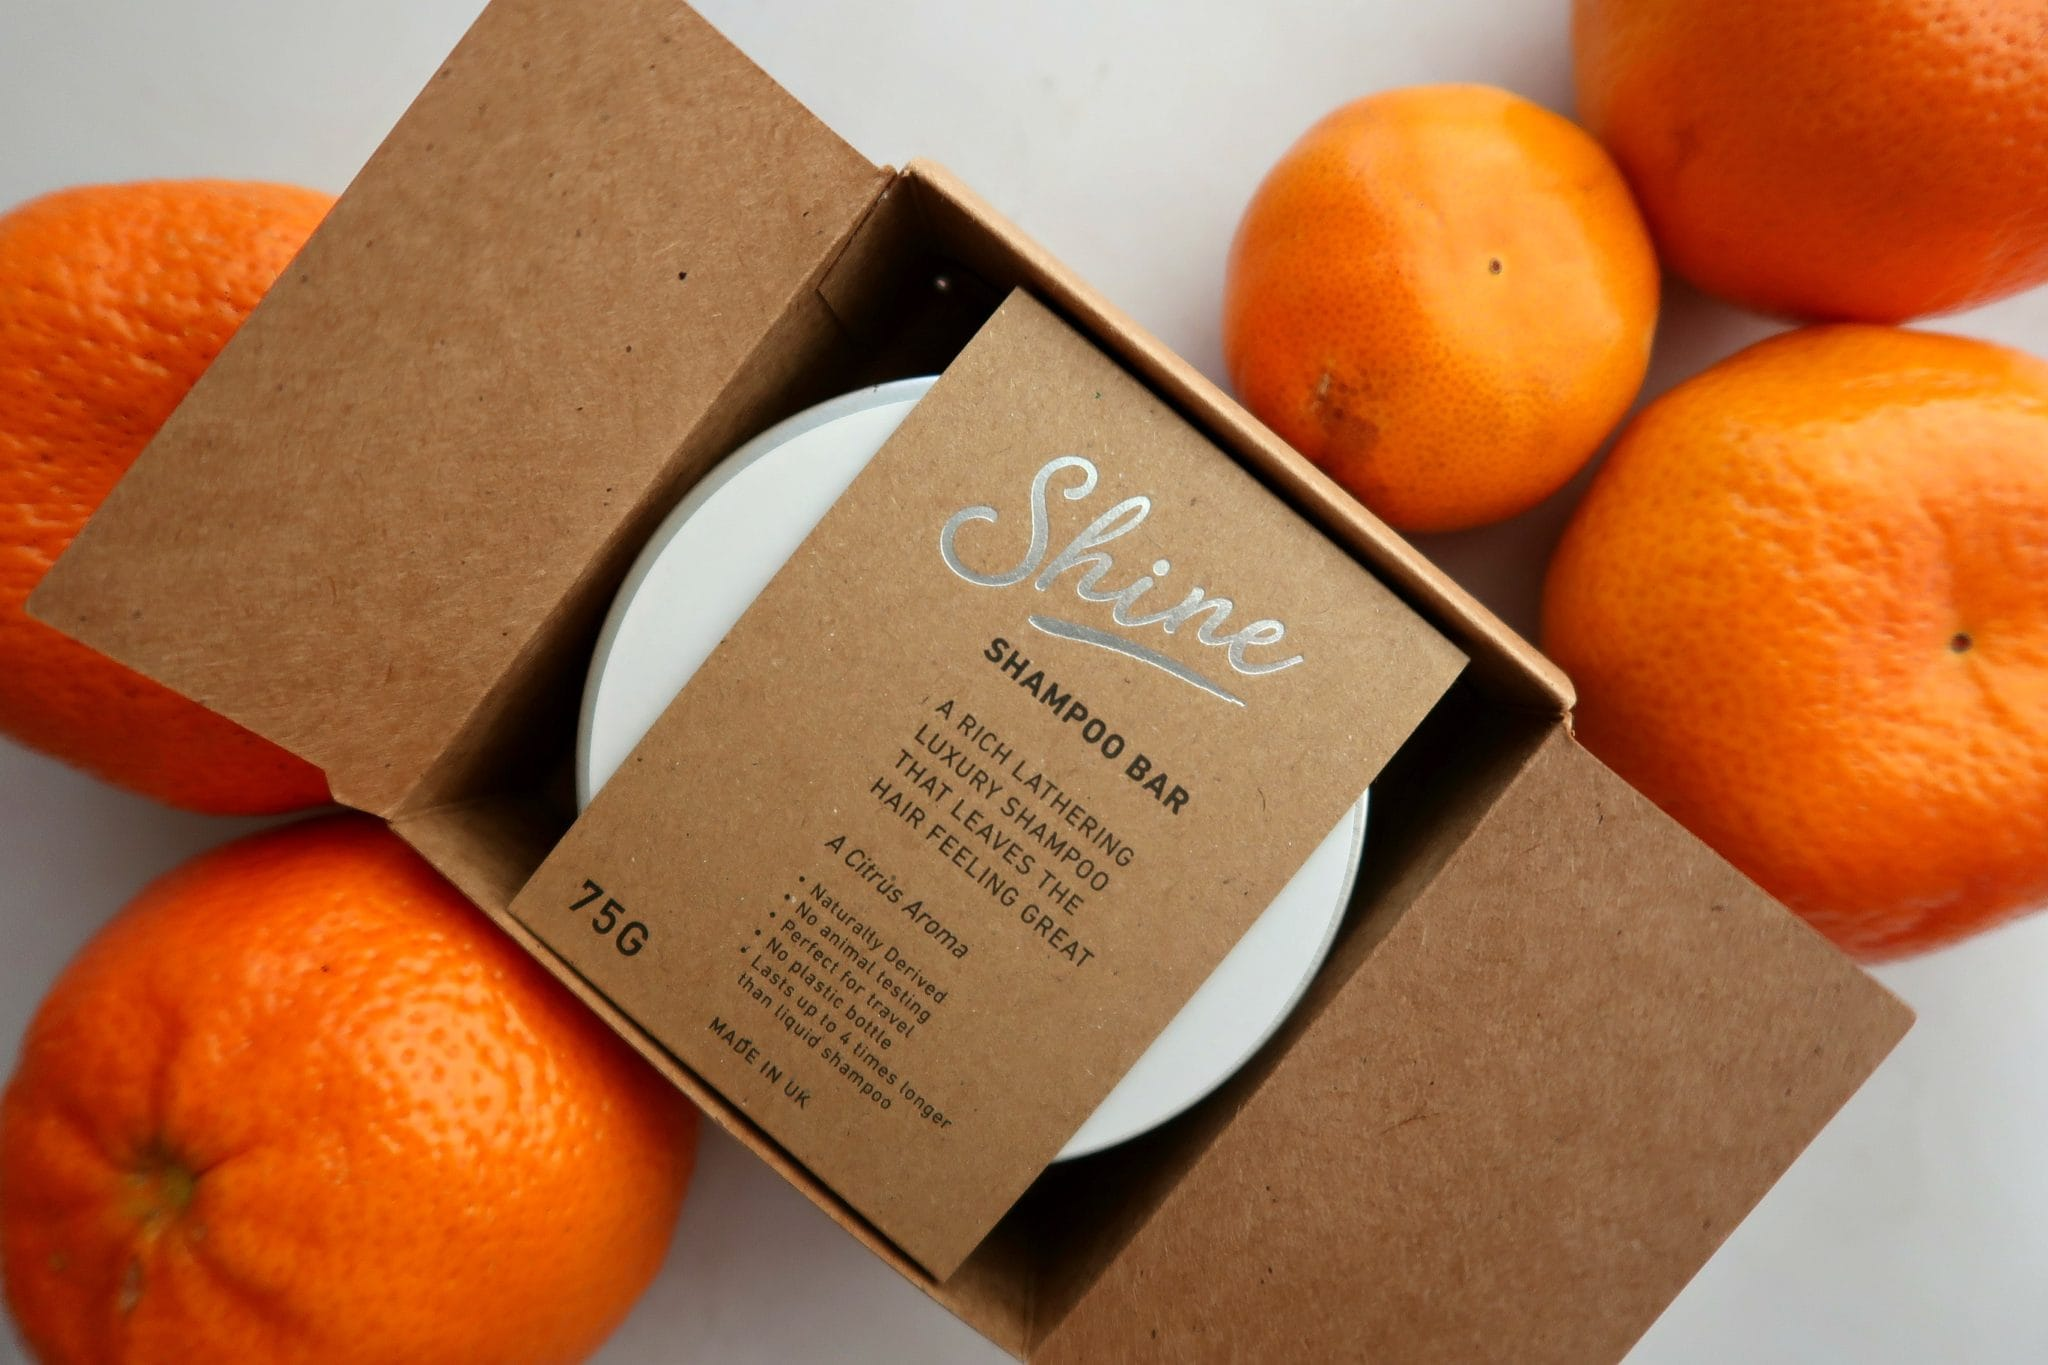 environmentally friendly living shine shampoo bar in a silver box surrownded by oranges